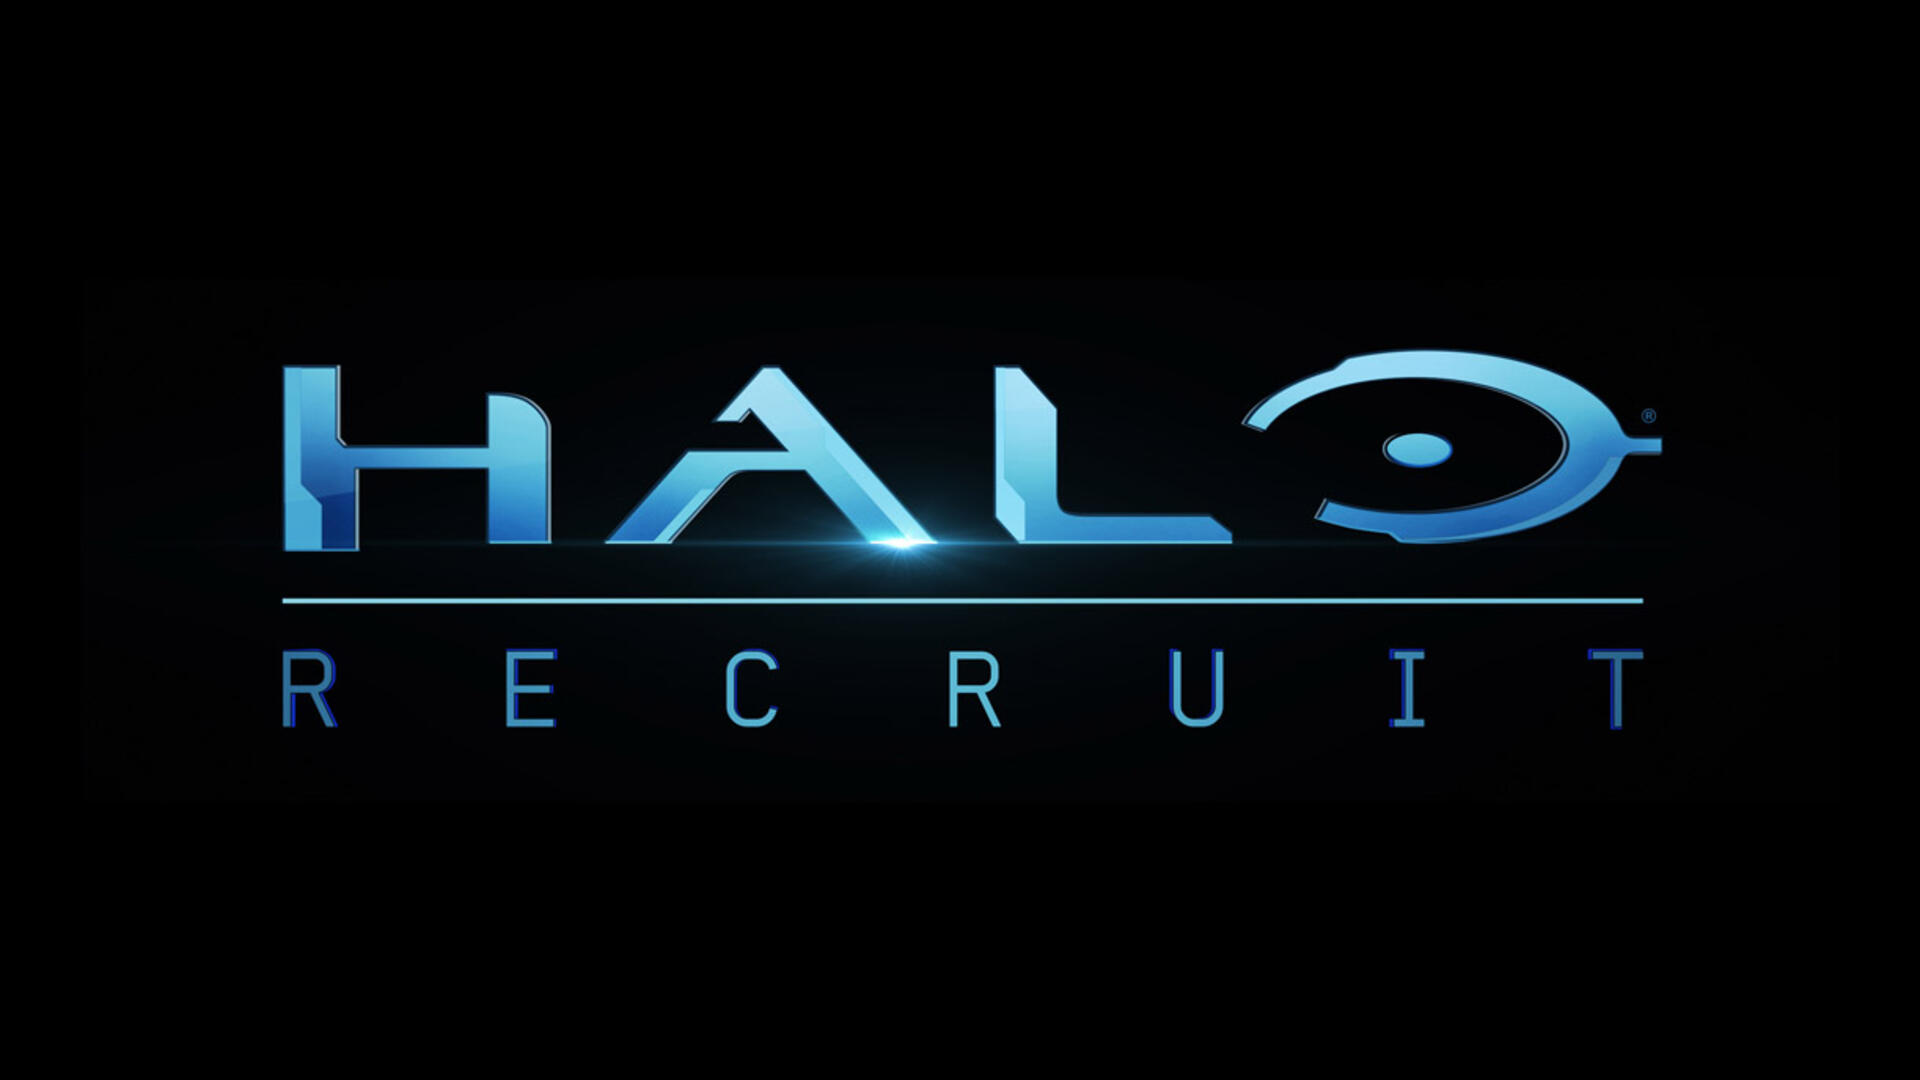 Here's a Preview of Halo Recruit Running in Mixed Reality